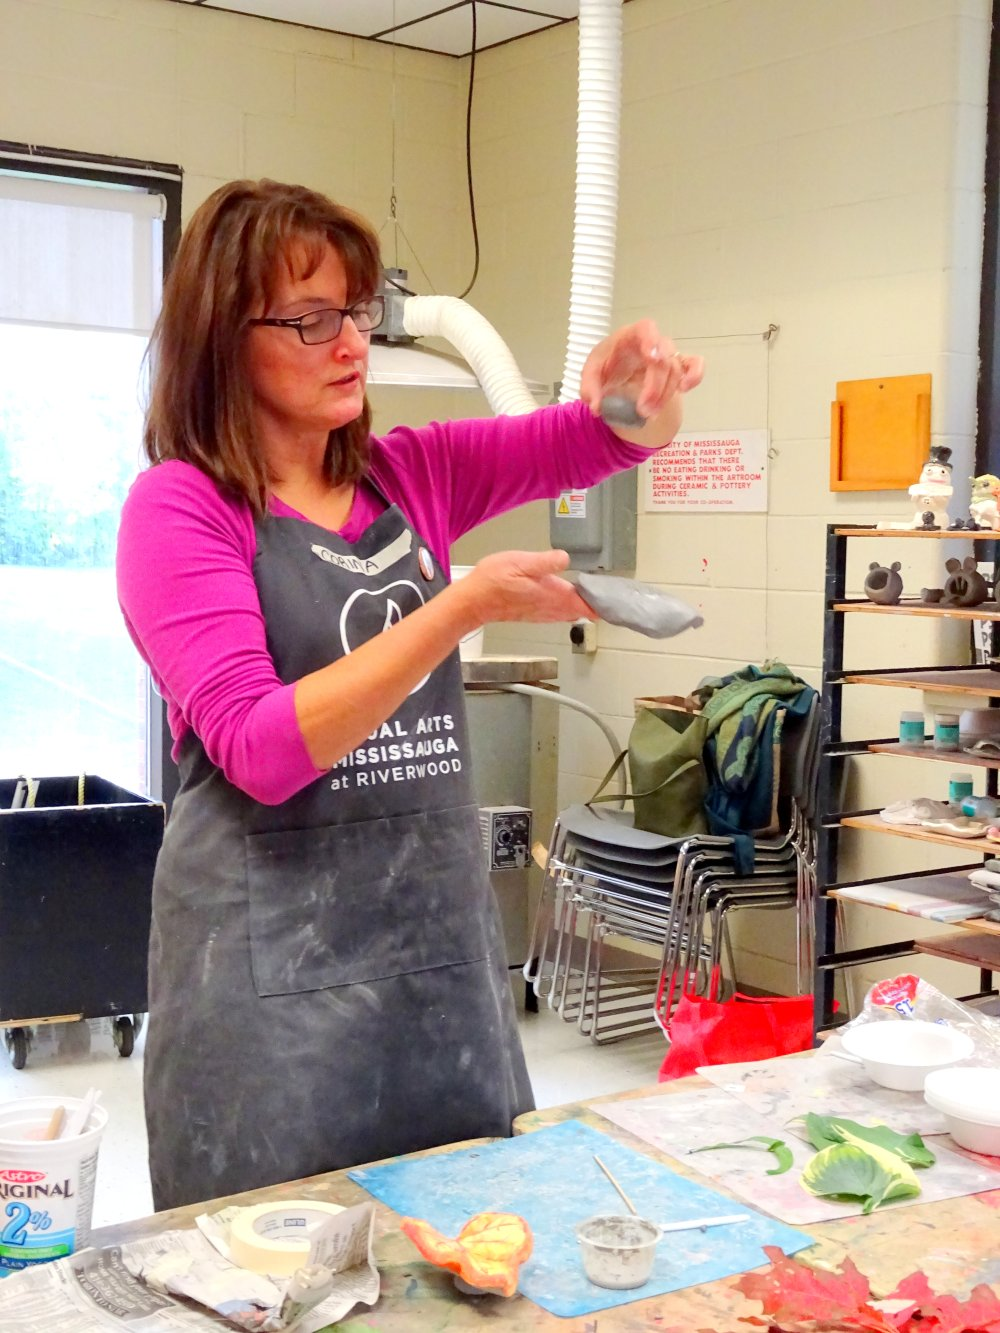 Art Instructor Corina teaching seniors how to make clay leaves photo by I Lee, October 6, 2015